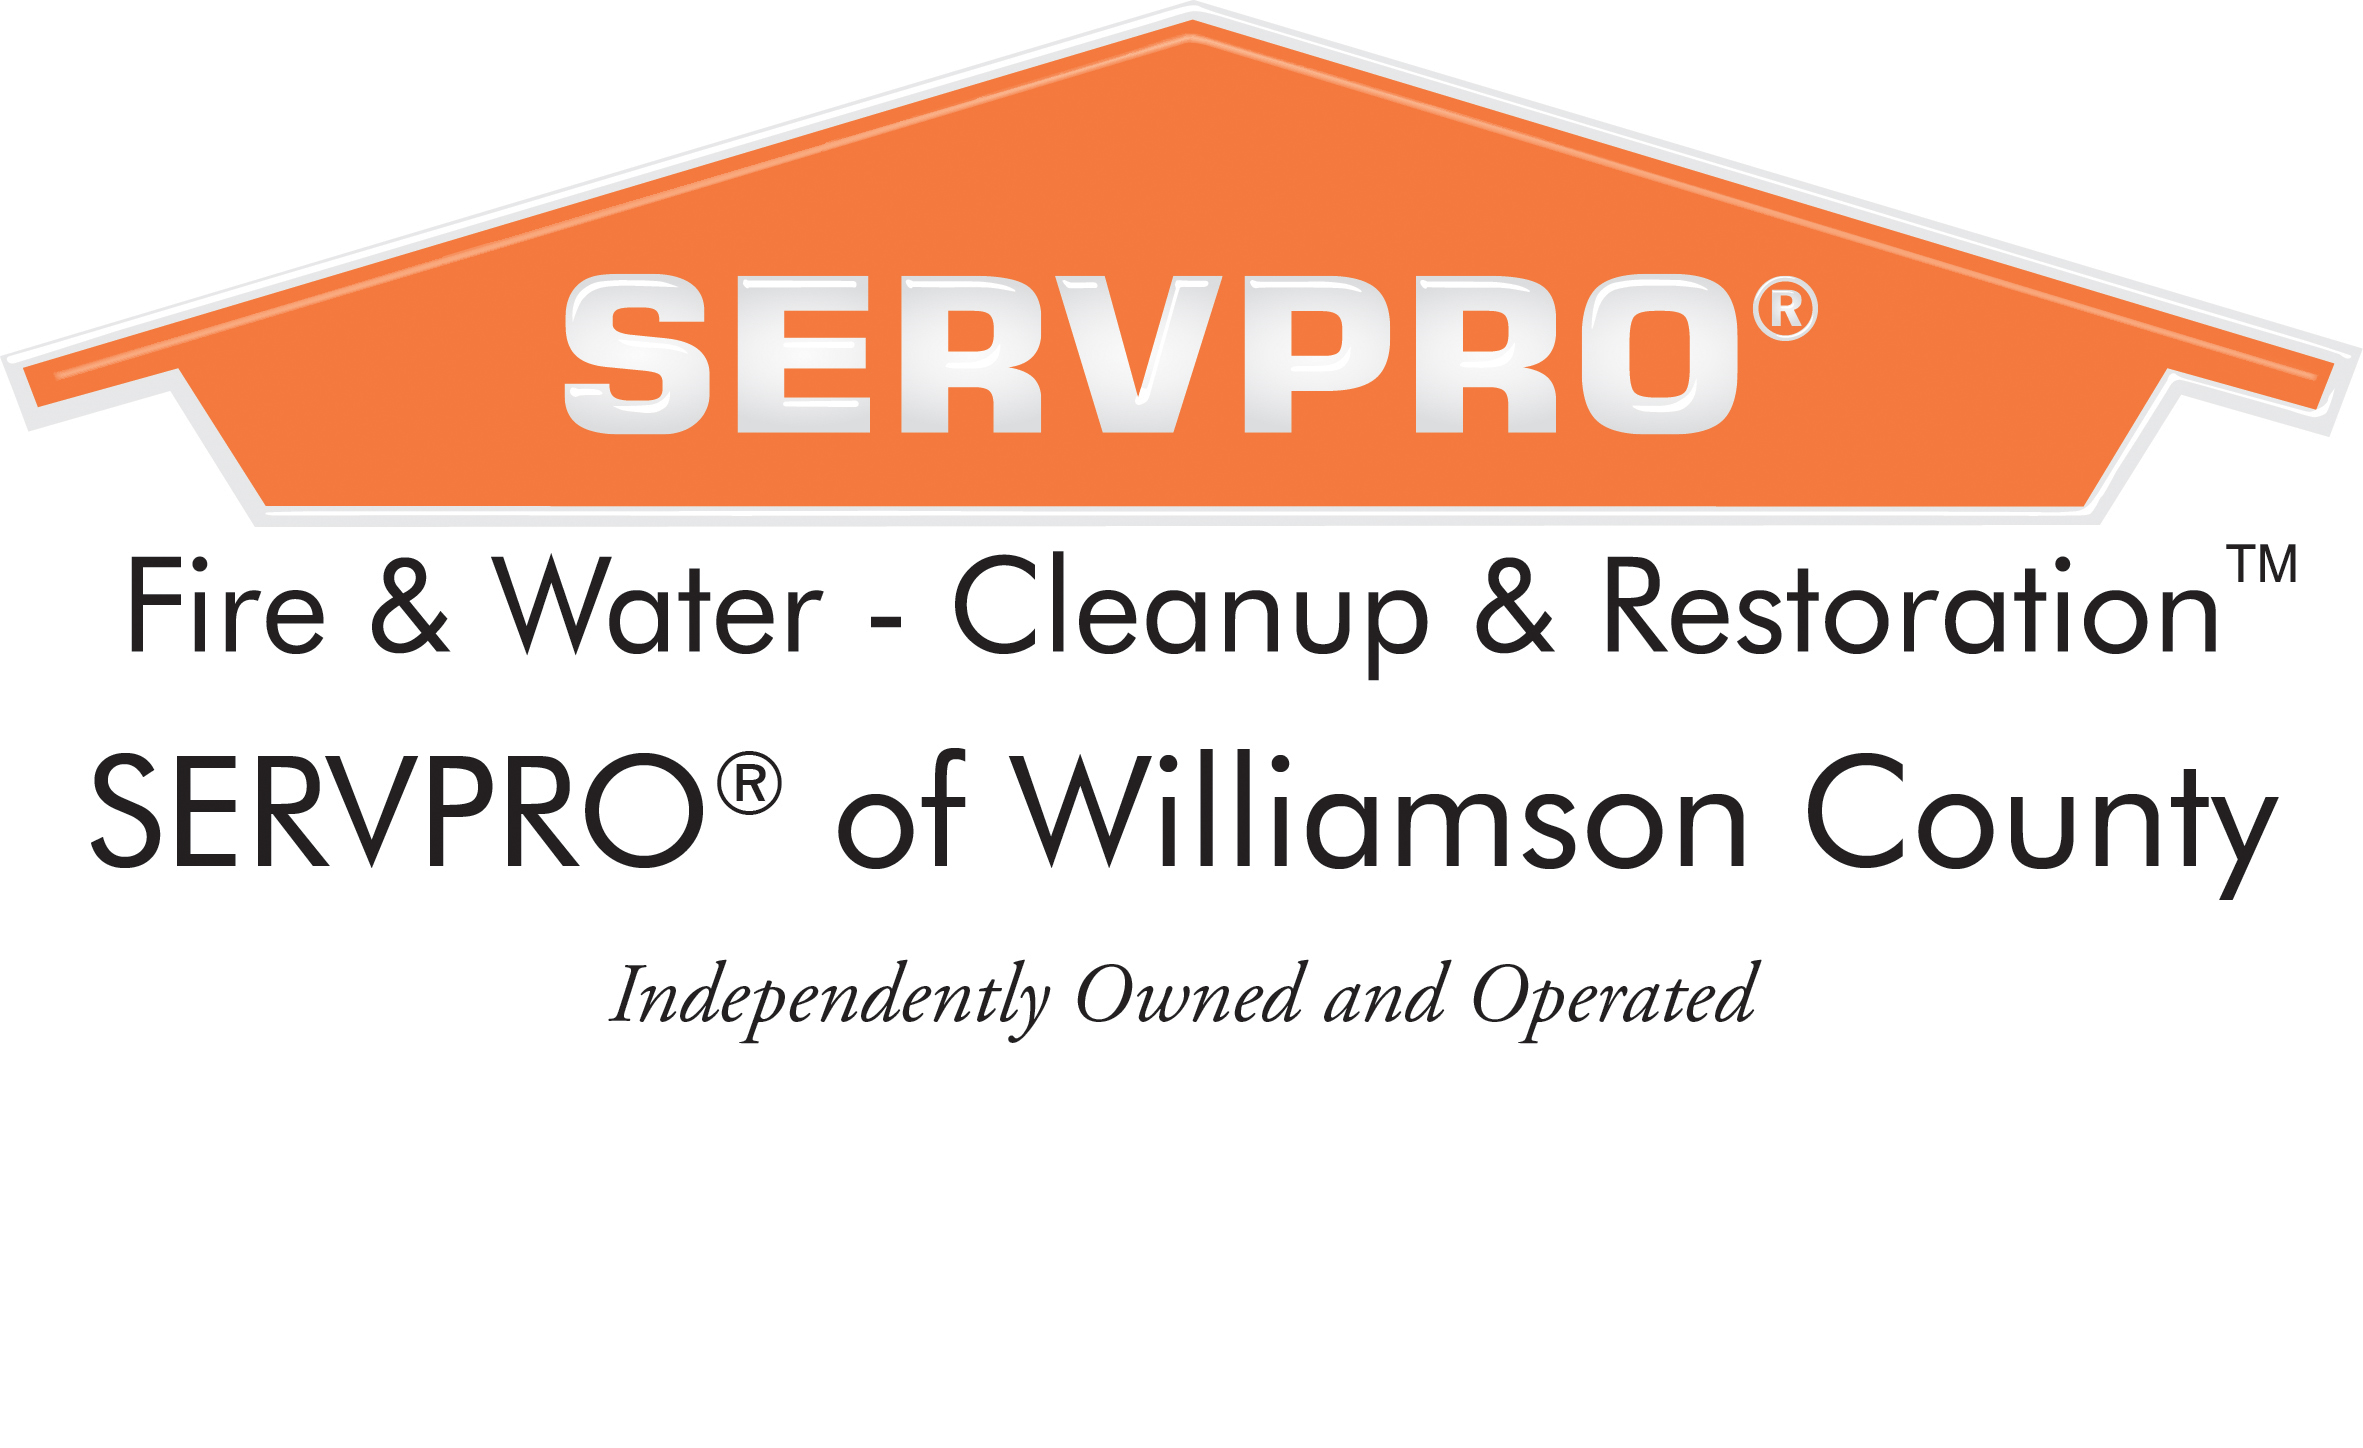 SERVPRO of Williamson County organizes a benefit for Monroe Carell Jr. Childrens Hospital at Williamson Medical Center